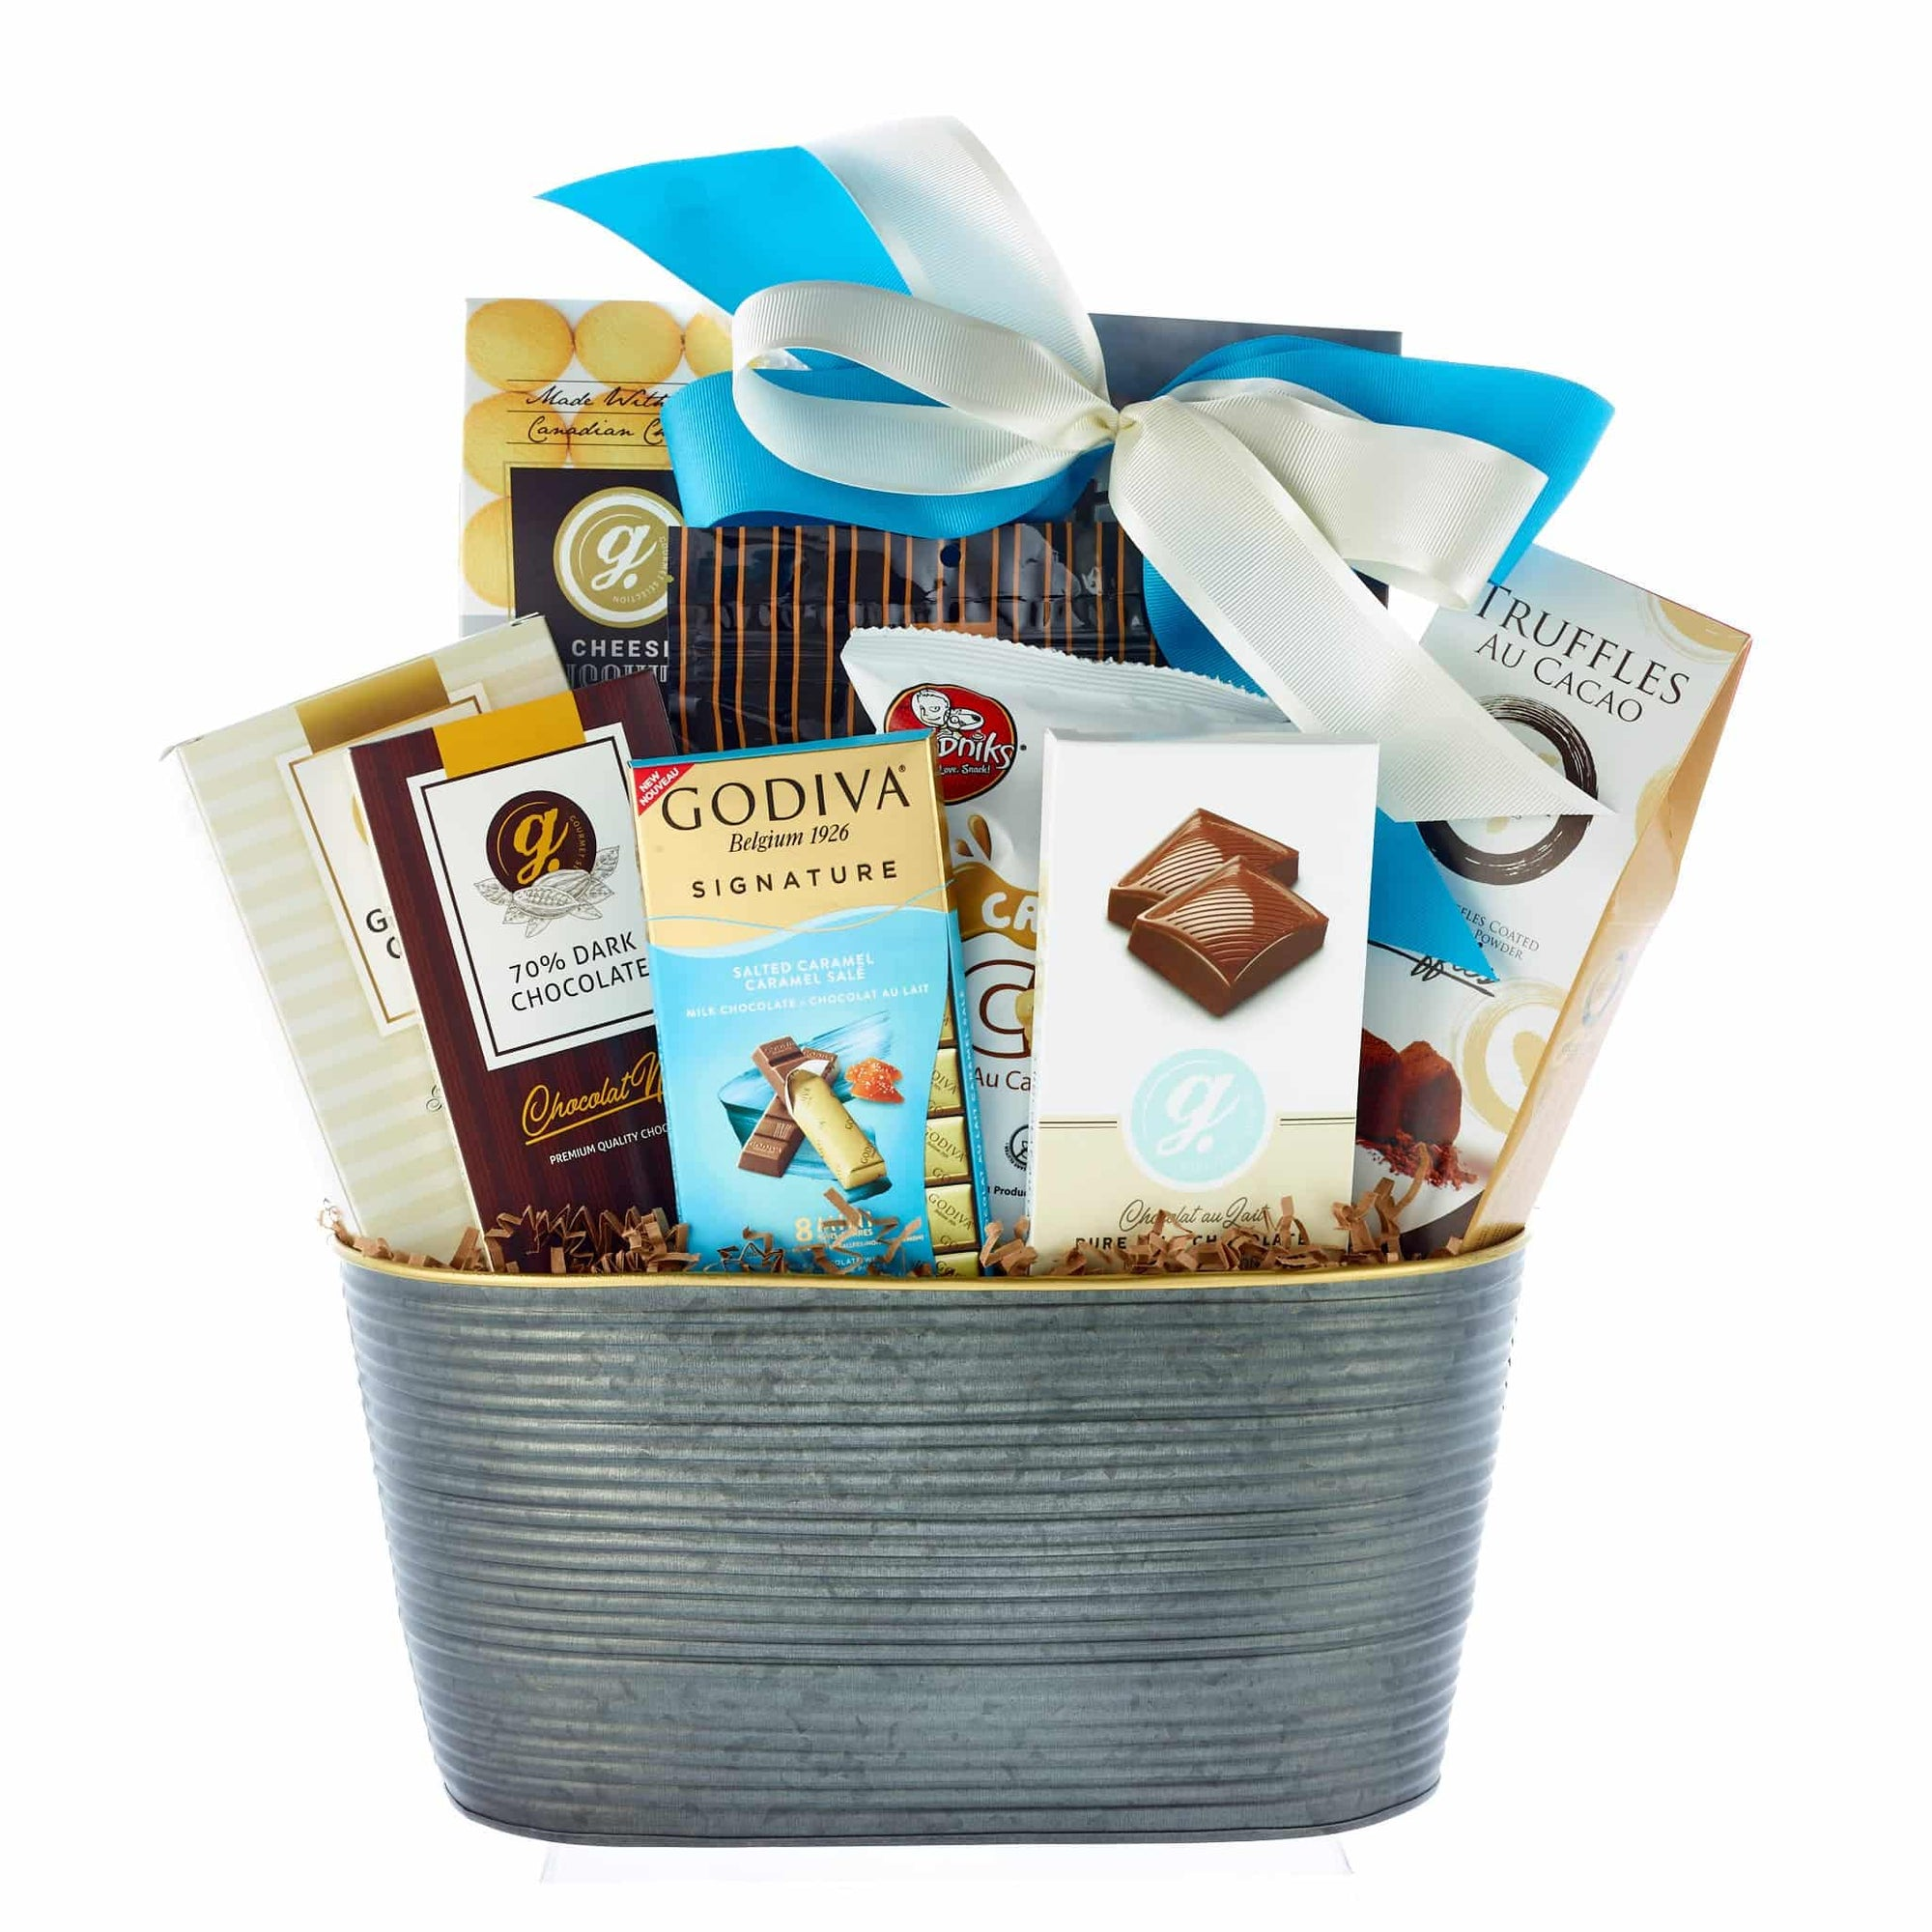 Gourmet chocolates and cookies in metal basket